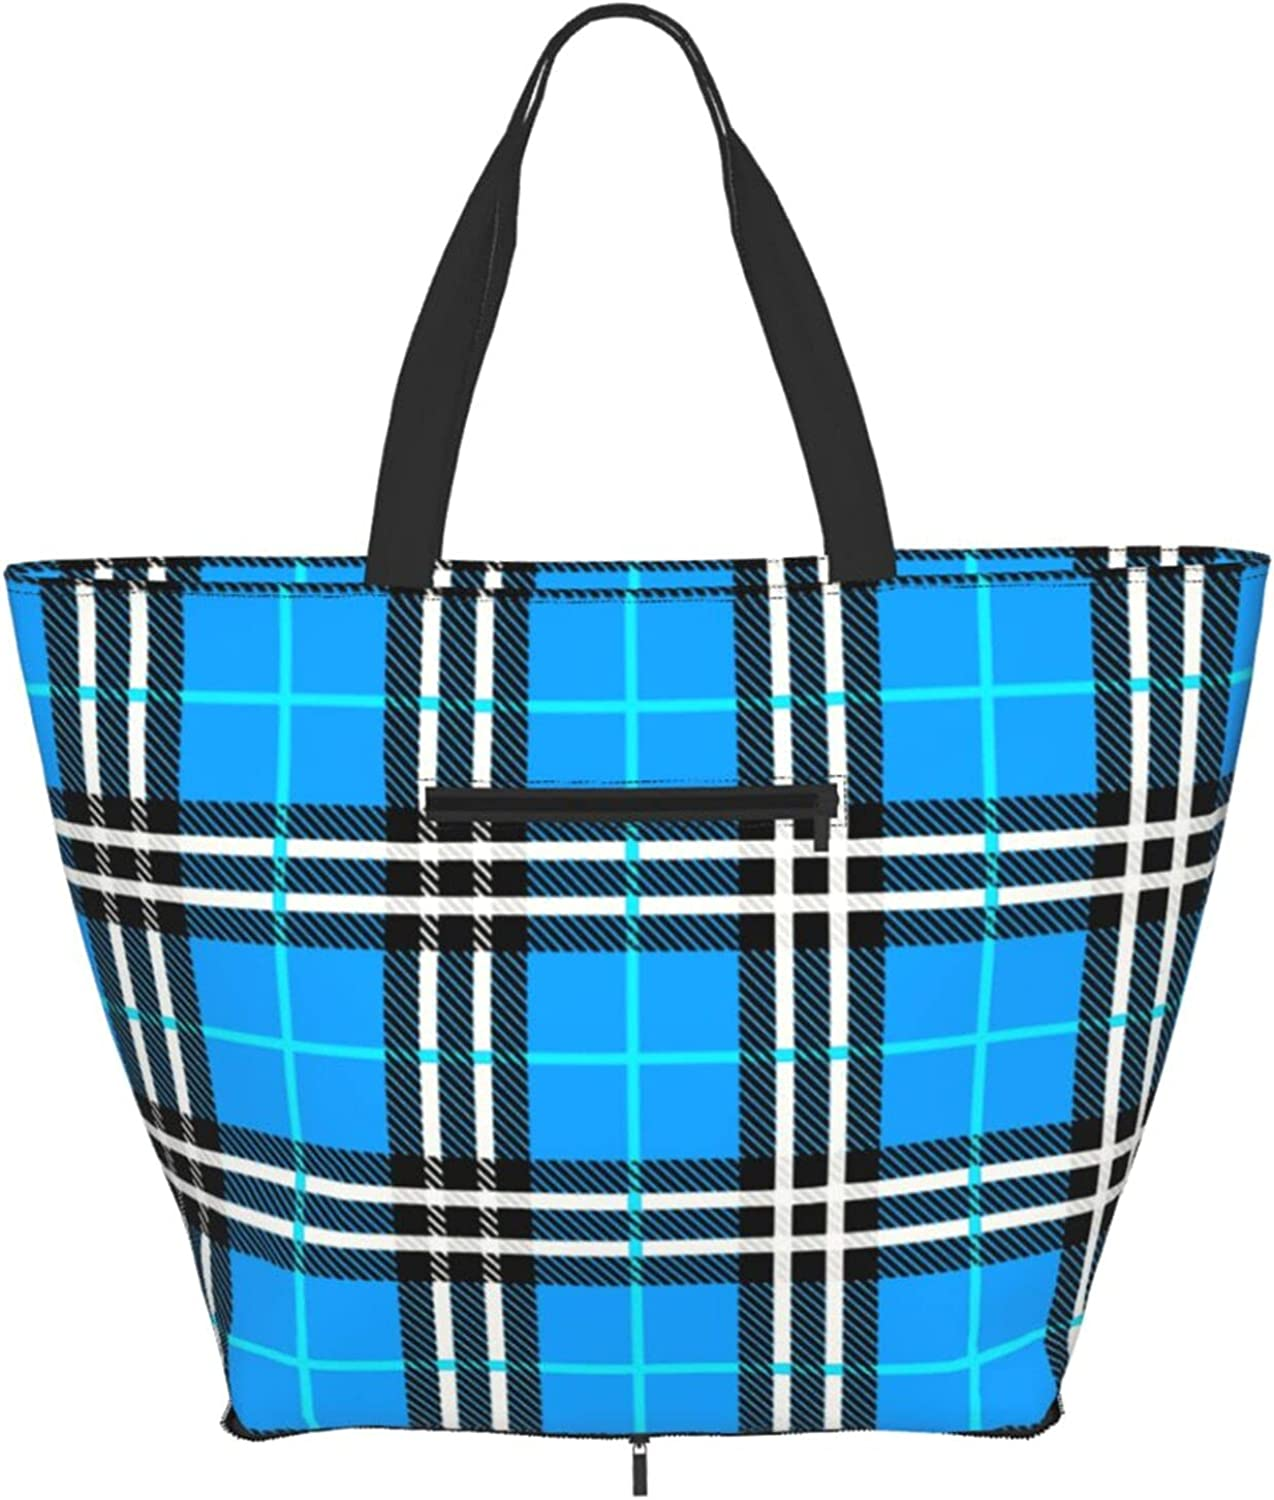 Shoulder Tote Bag Blue High quality new Discount is also underway Tartan Plaid Handle Purse Top Style Satch